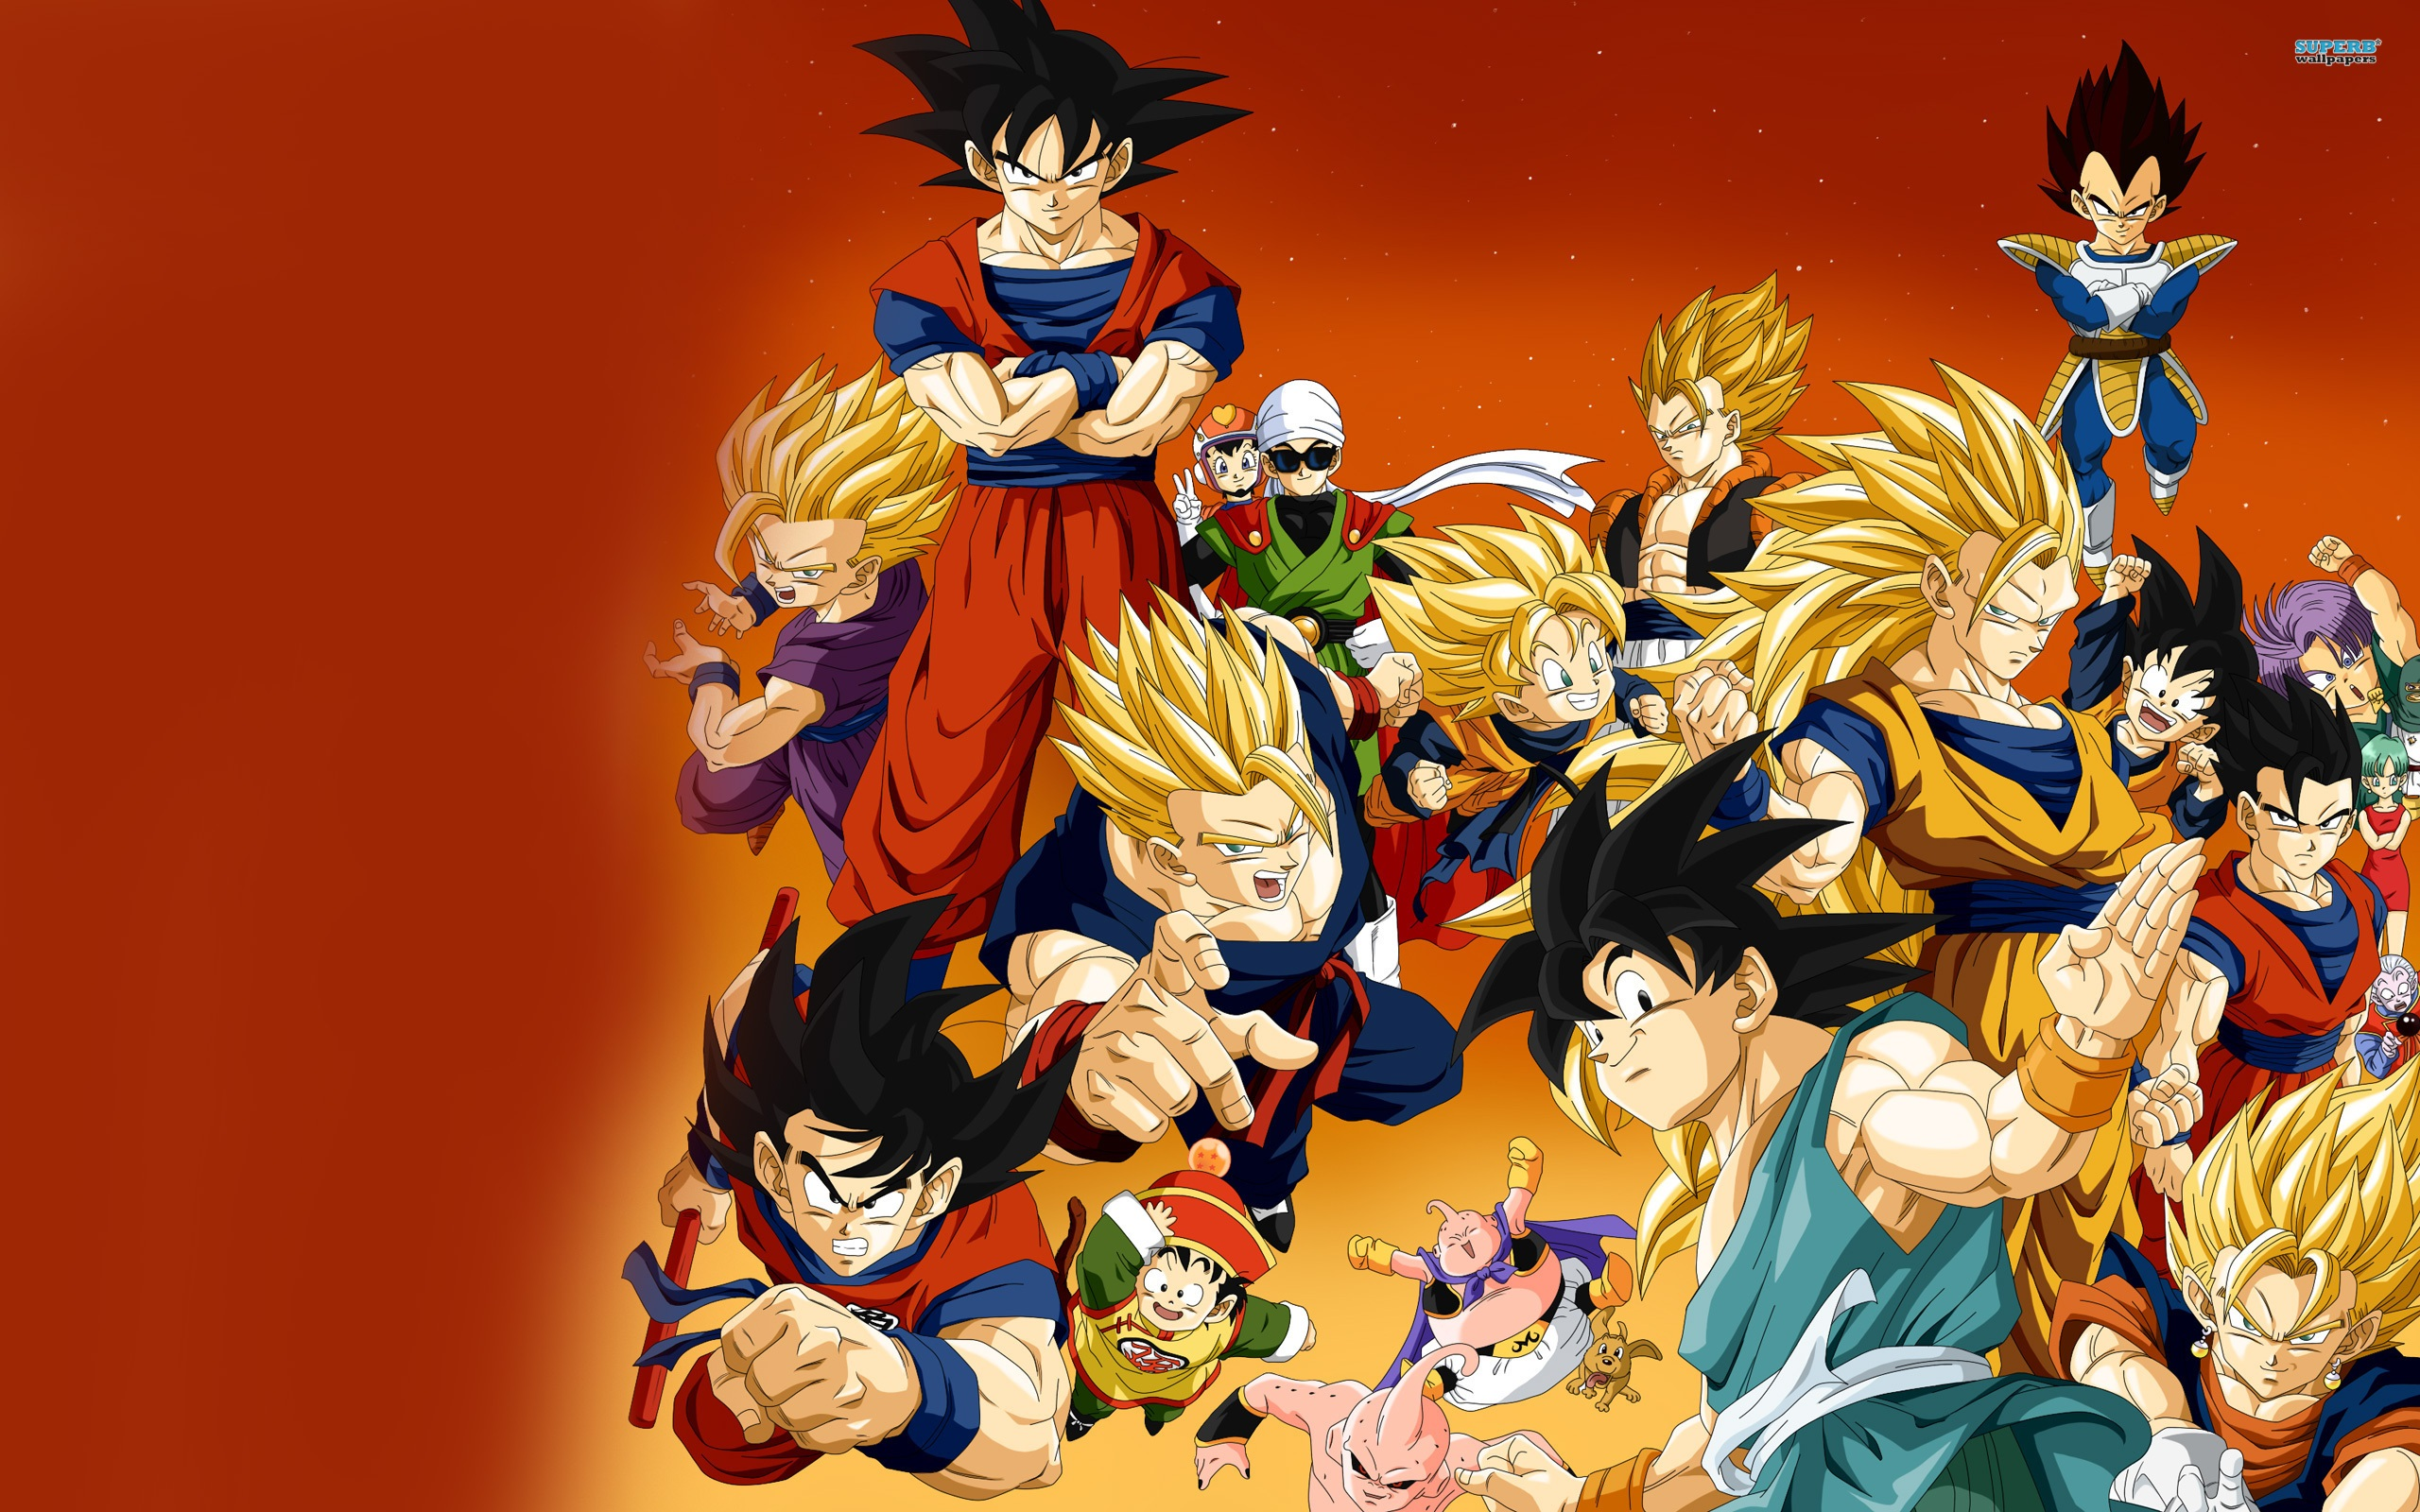 Wallpaper Dragon Ball Z Anime Hd 2560x1600 Hd Picture Image